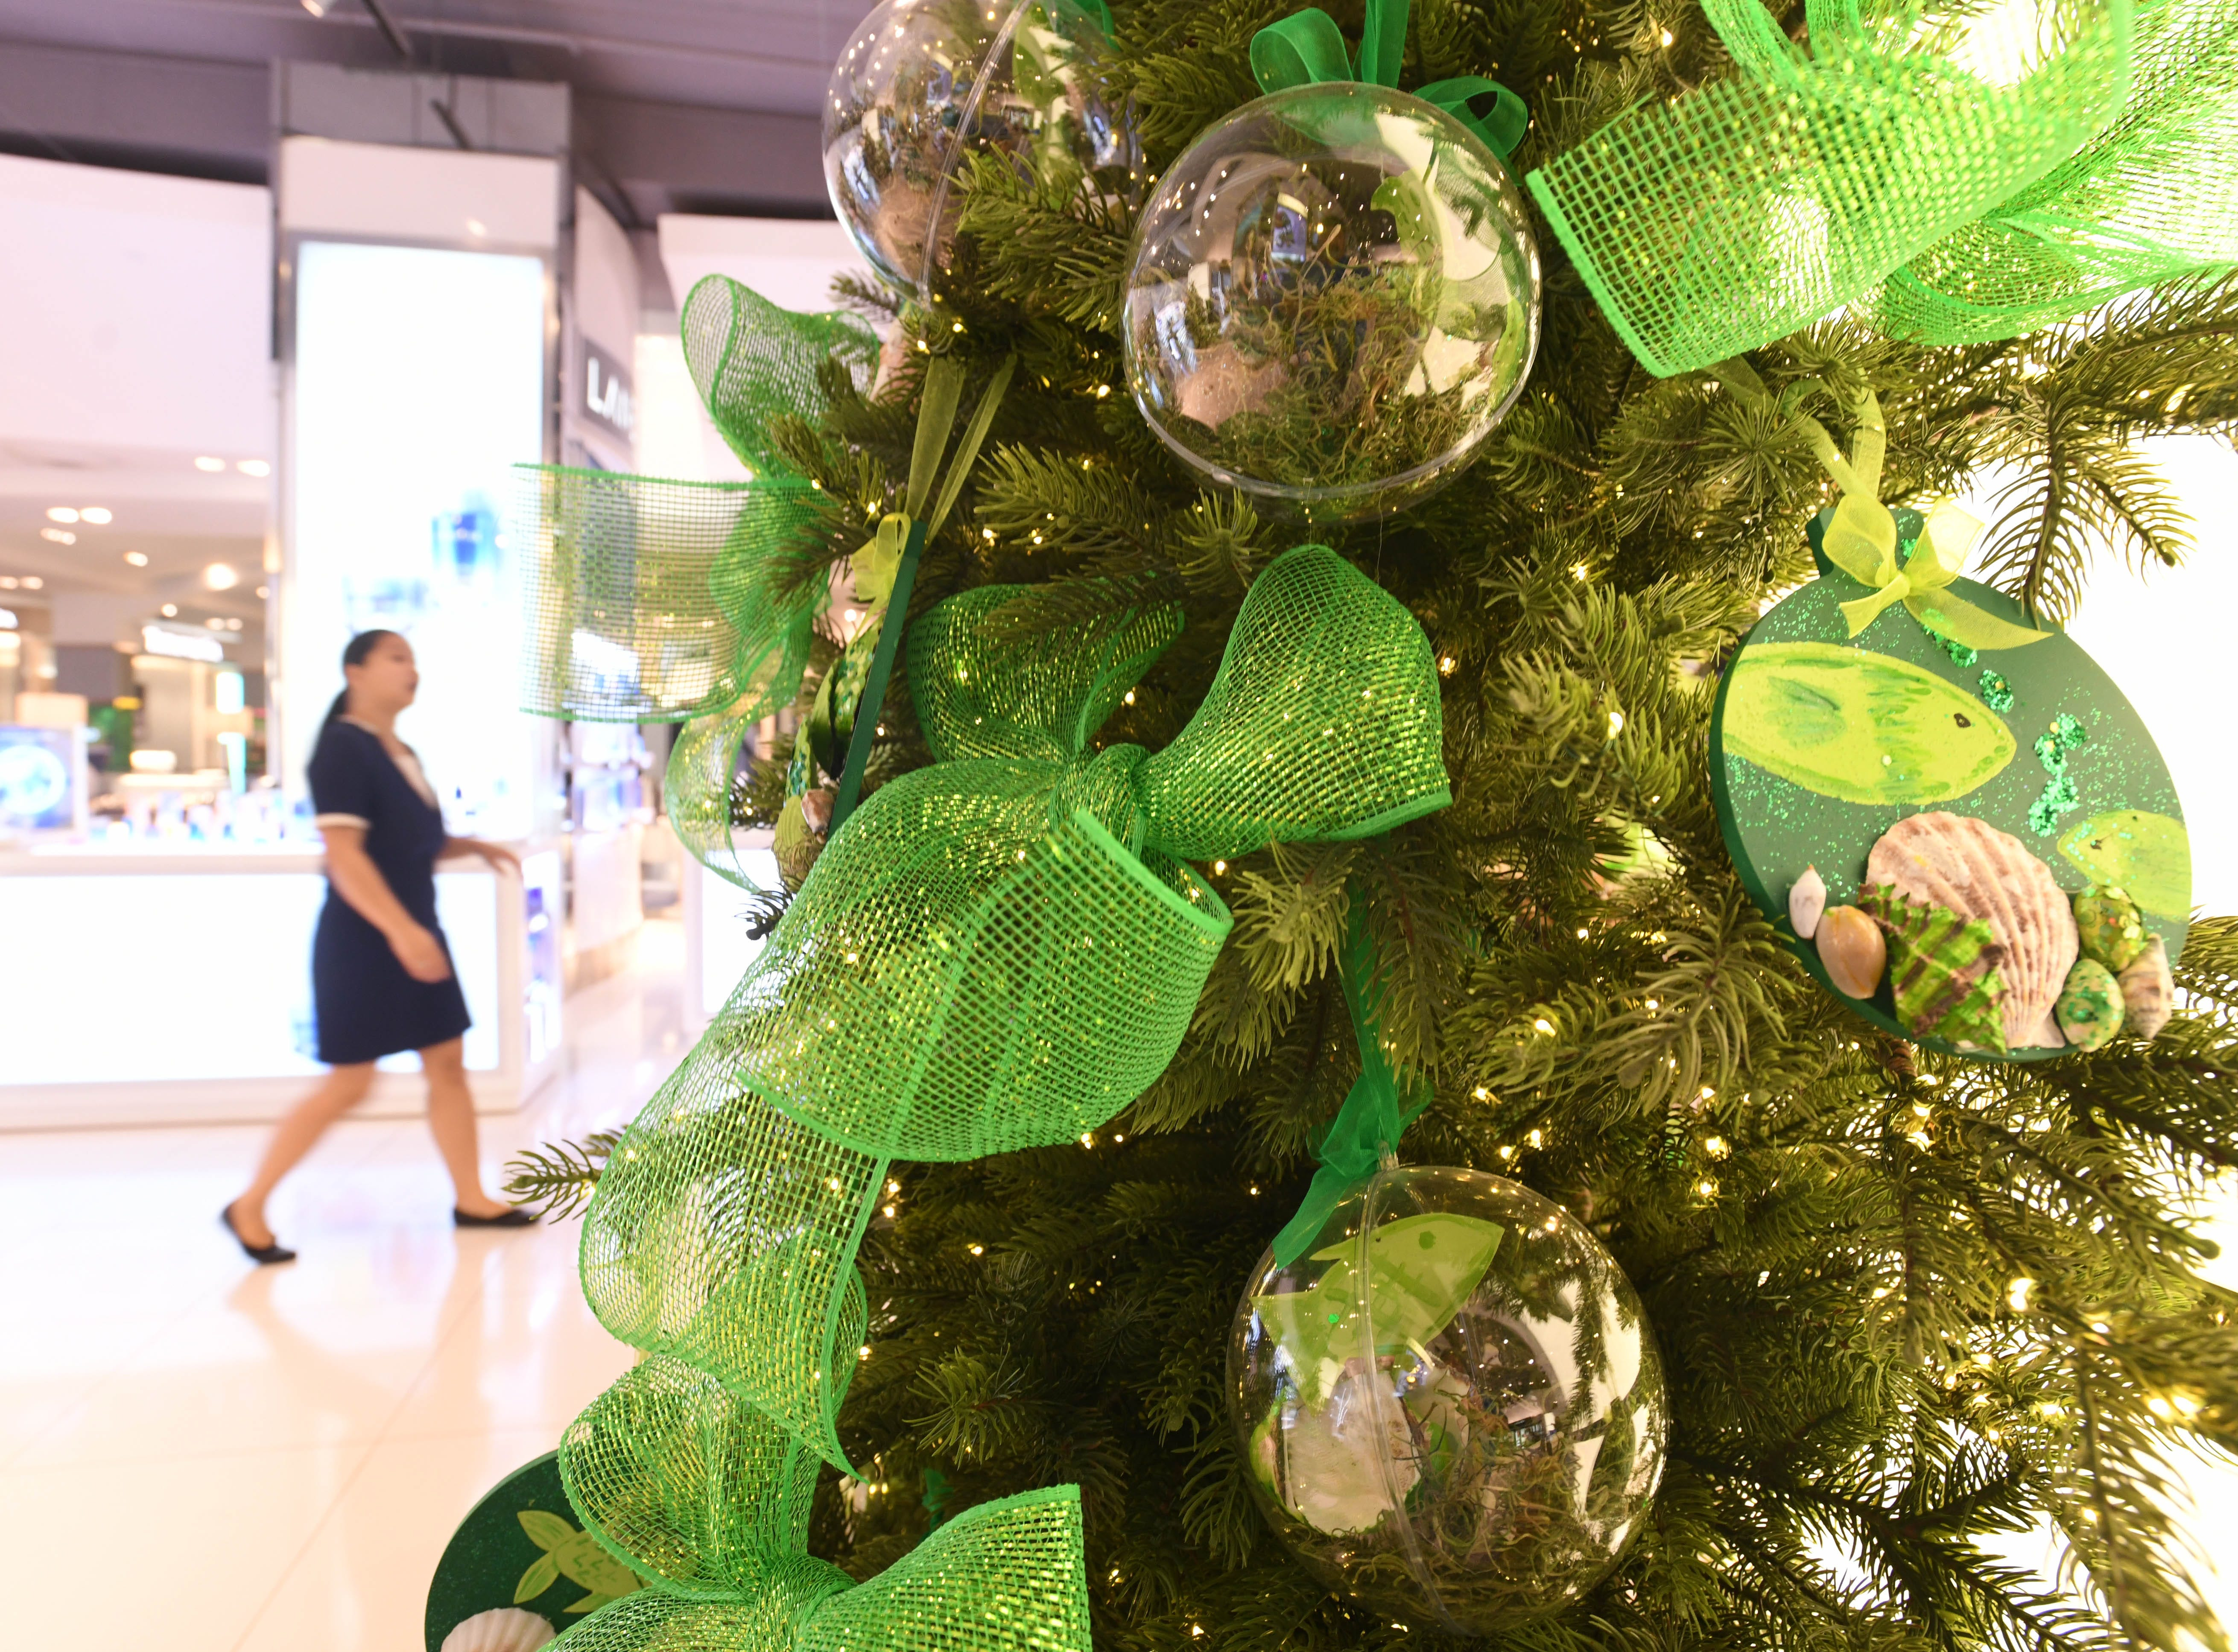 Green was the color scheme assigned to J.Q. San Miguel Elementary School for their Christmas decorated tree entered in the 6th annual Festival of Trees competition at the T Galleria by DFS in Tumon on Saturday, Jan. 5, 2019. The school placed first in the competition and was awarded $2,000 for their creativity in dressing up the tree with an eco-friendly message of keeping the island green.